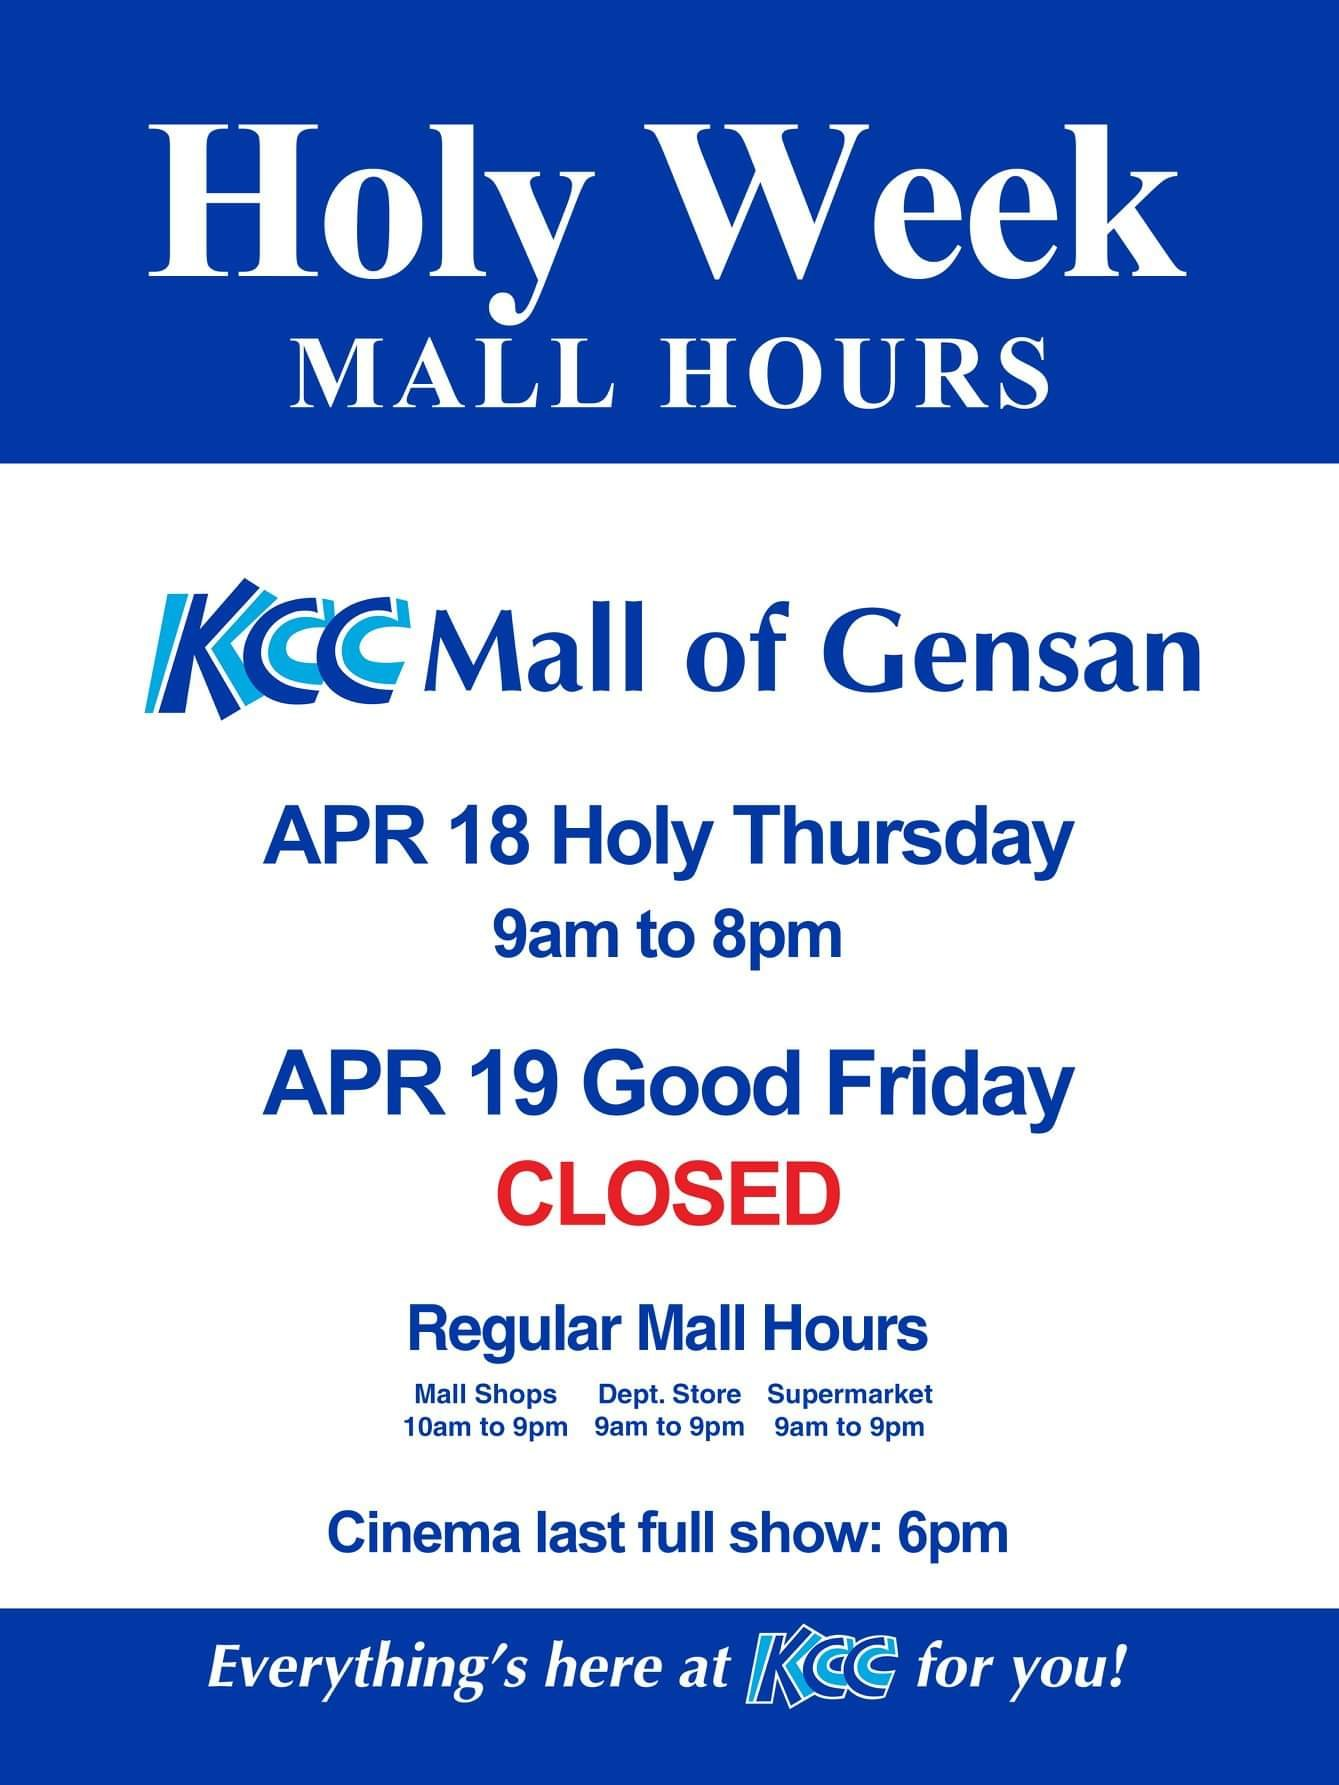 KCC Mall of Gensan's Holy Week 2019 Schedule